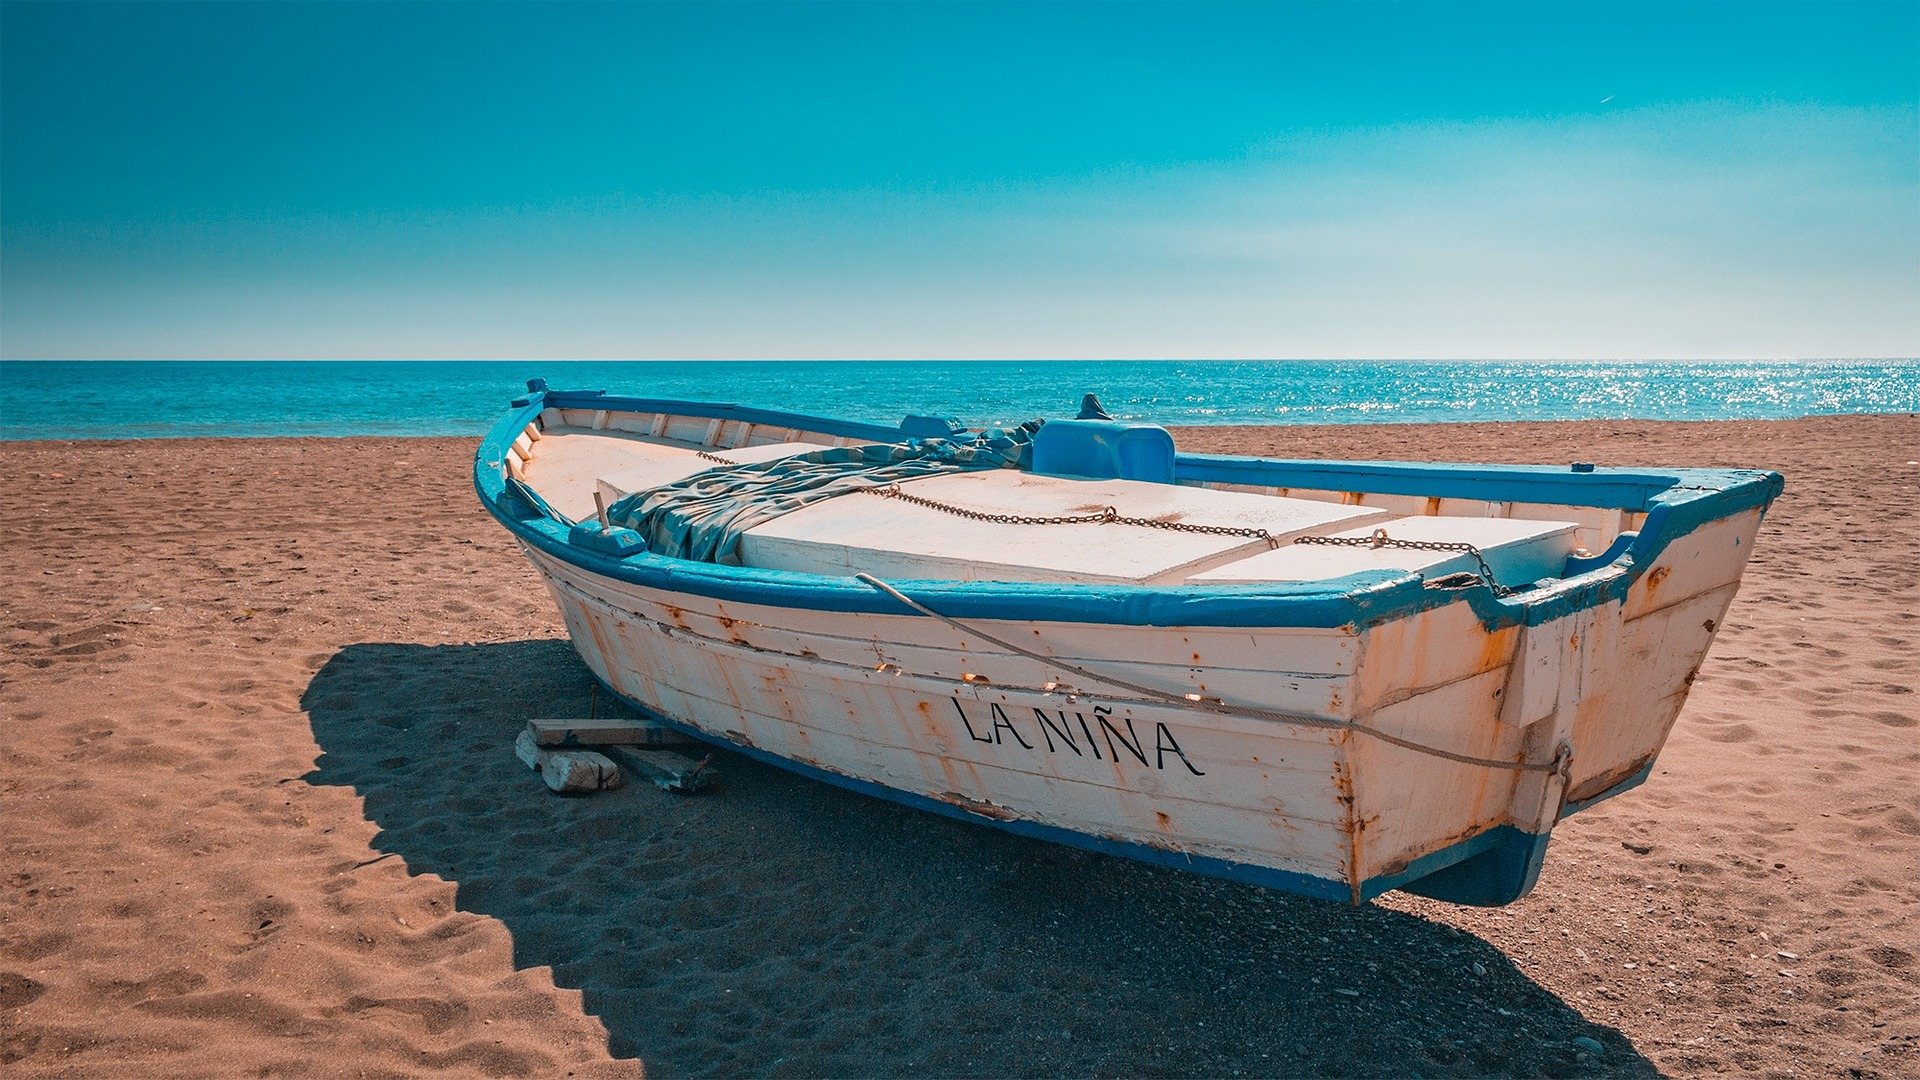 White and blue boat on the beach